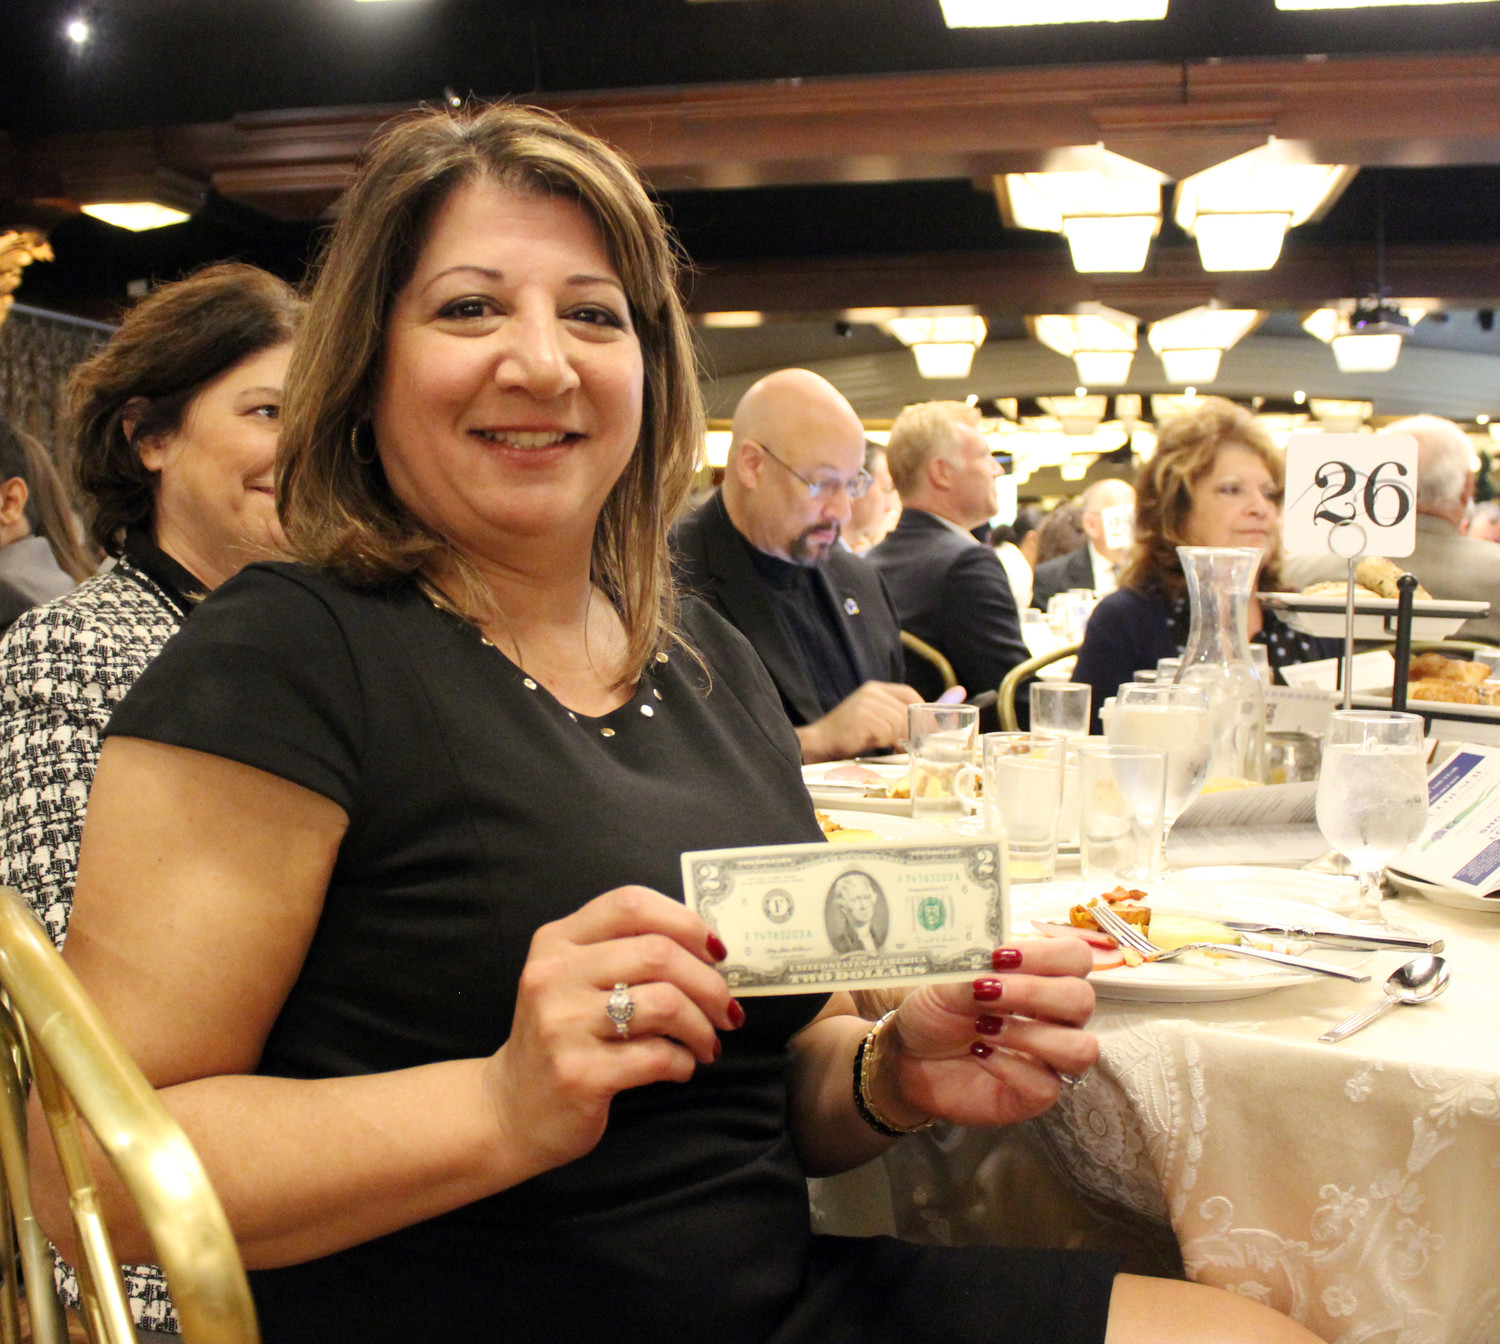 Rosemary Basmajian was named East Meadow's Businessperson of the Year at the Nassau Council of Chambers of Commerce breakfast.